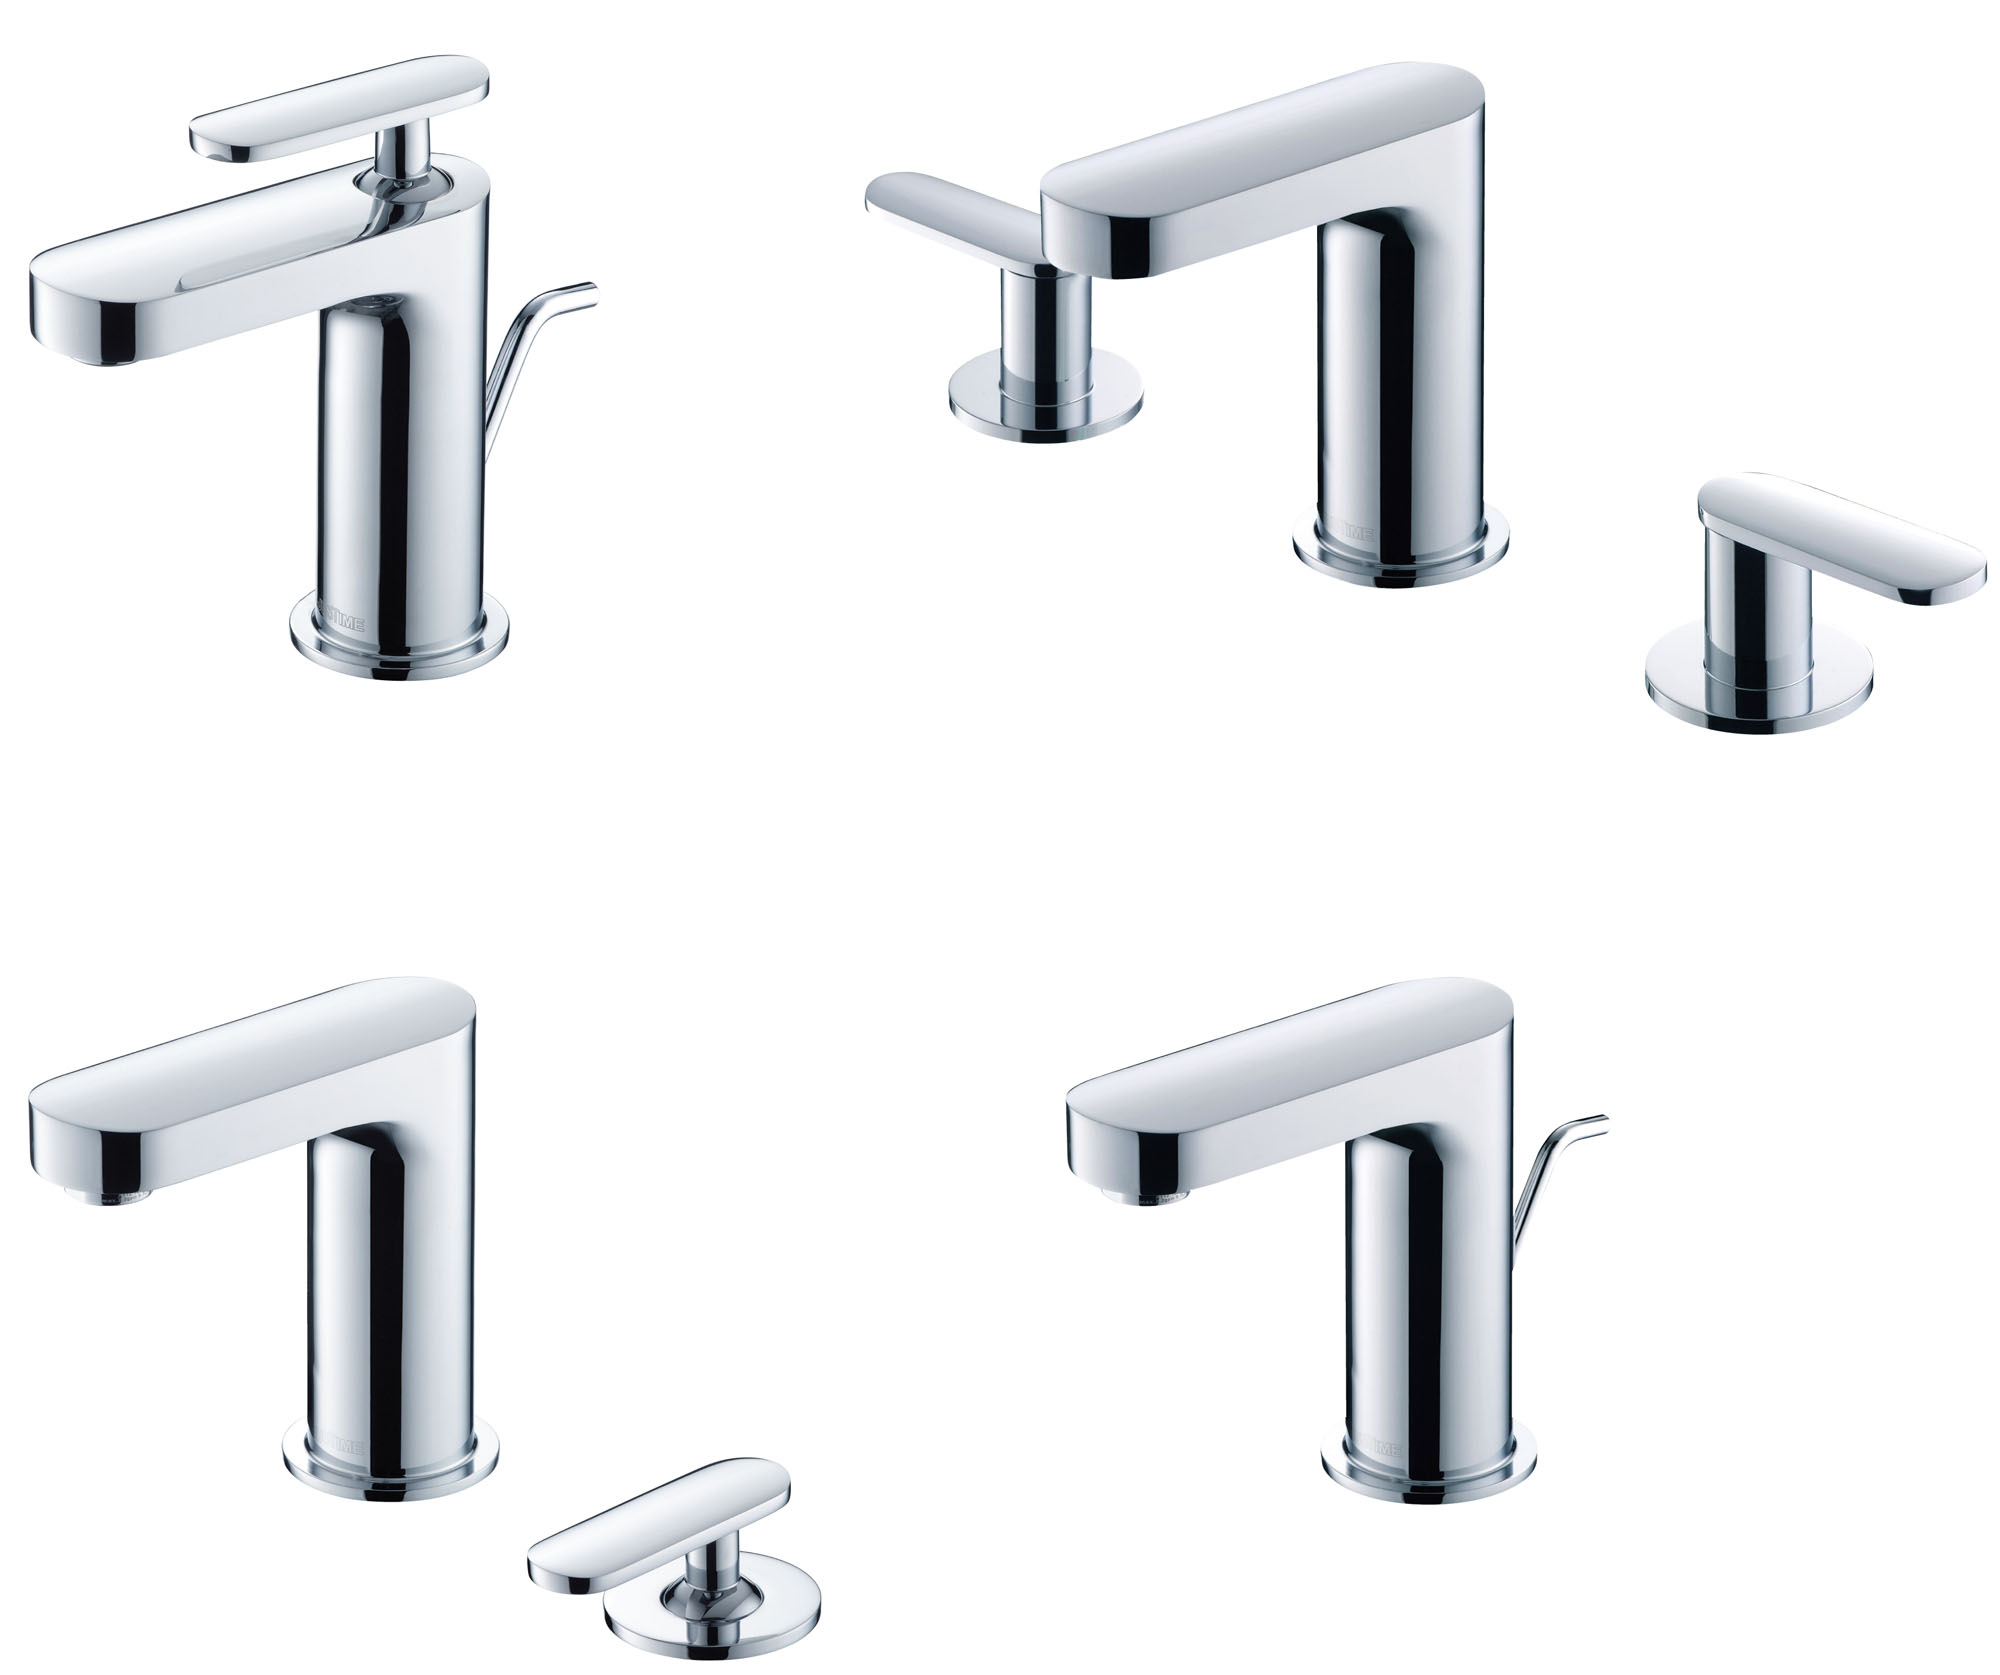 Charming Series Faucet / SHENG TAI BRASSWARE CO., LTD.